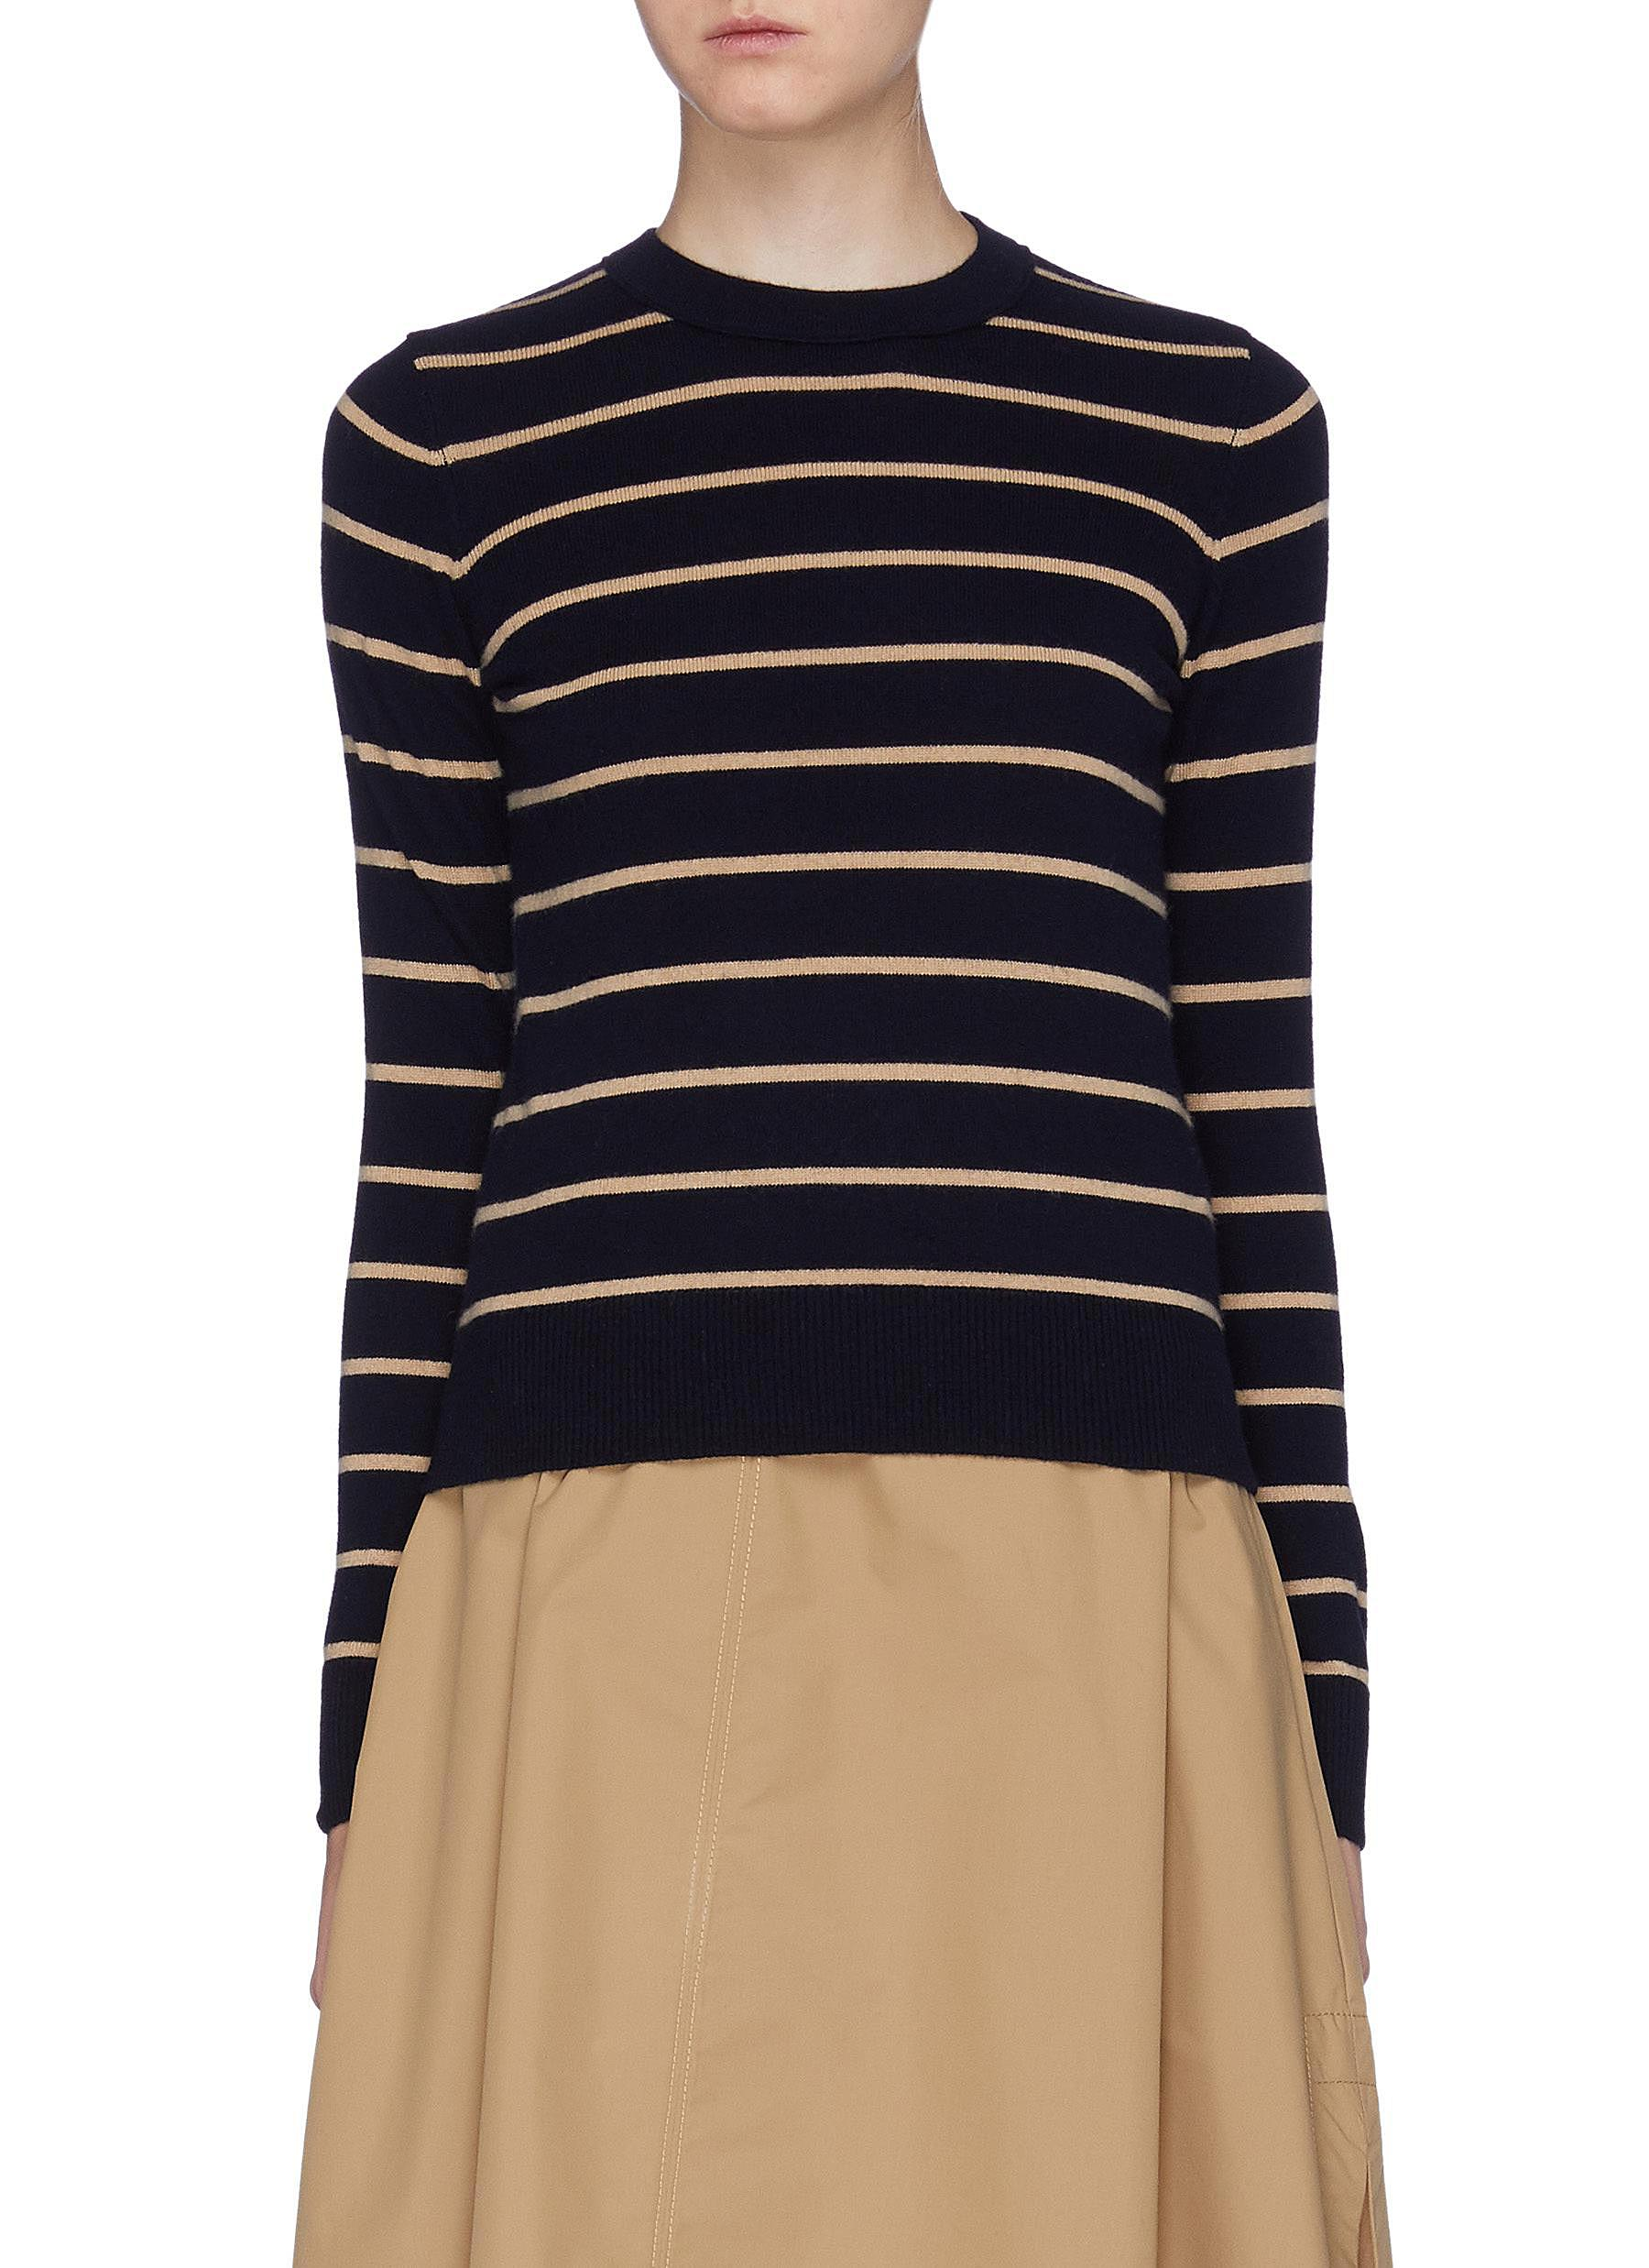 Stripe cashmere sweater by Vince